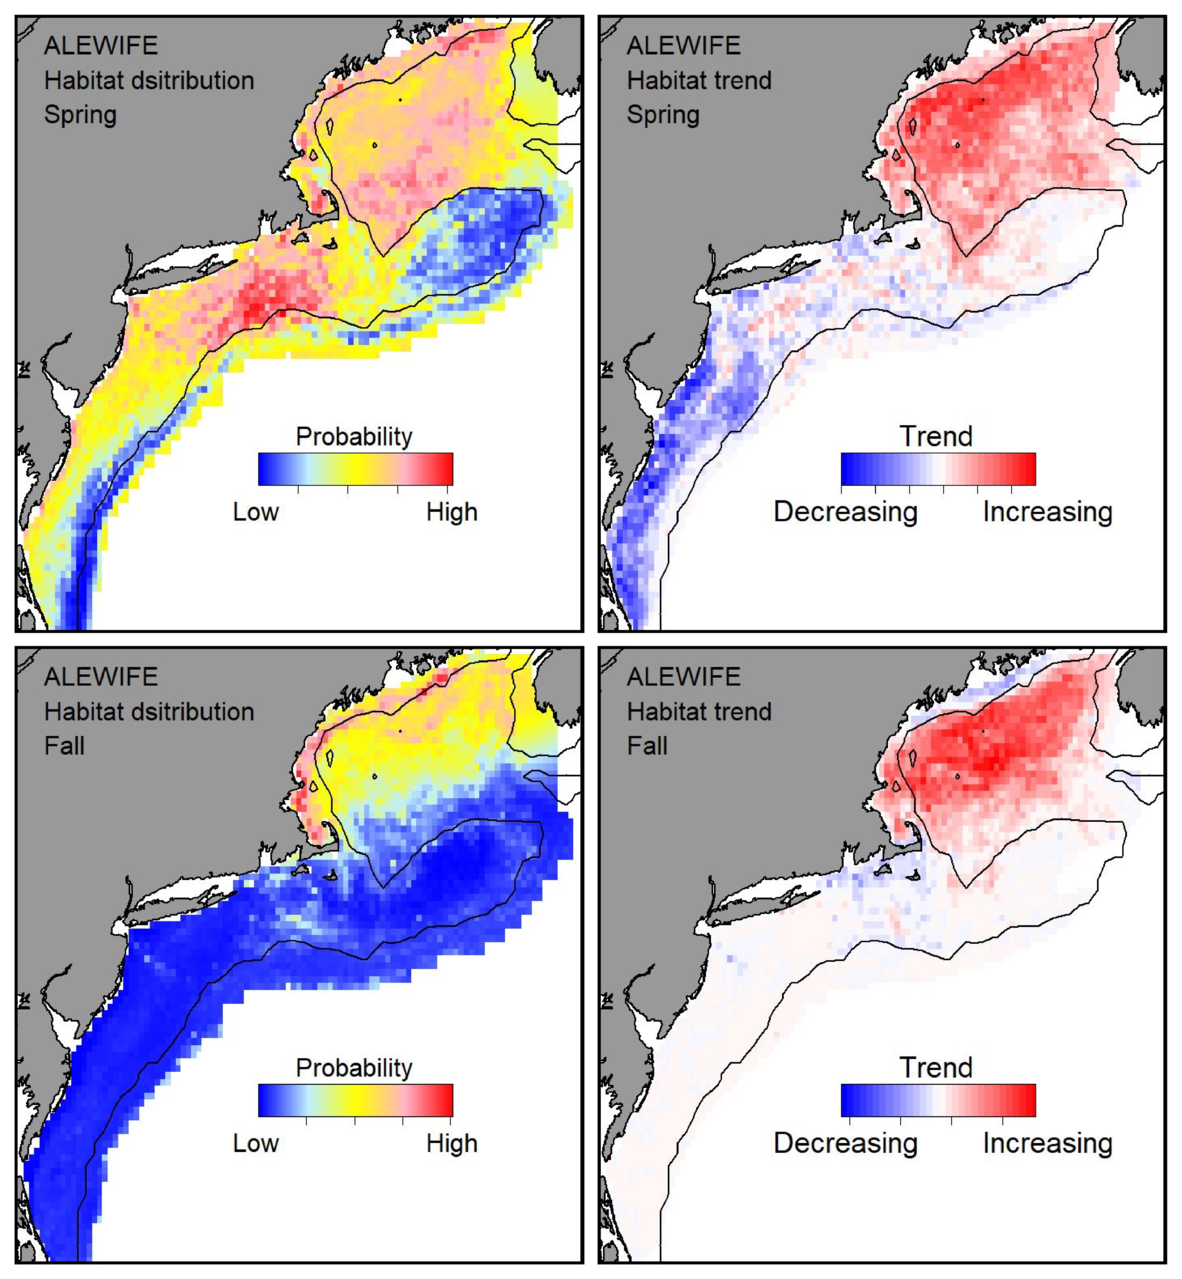 Top row: Probable habitat distribution for alewife showing the highest concentration and increasing trend in the Gulf of Maine during the spring. Bottom row: Probable habitat distribution for alewife showing the highest concentration and increasing trend in the Gulf of Maine during the fall.